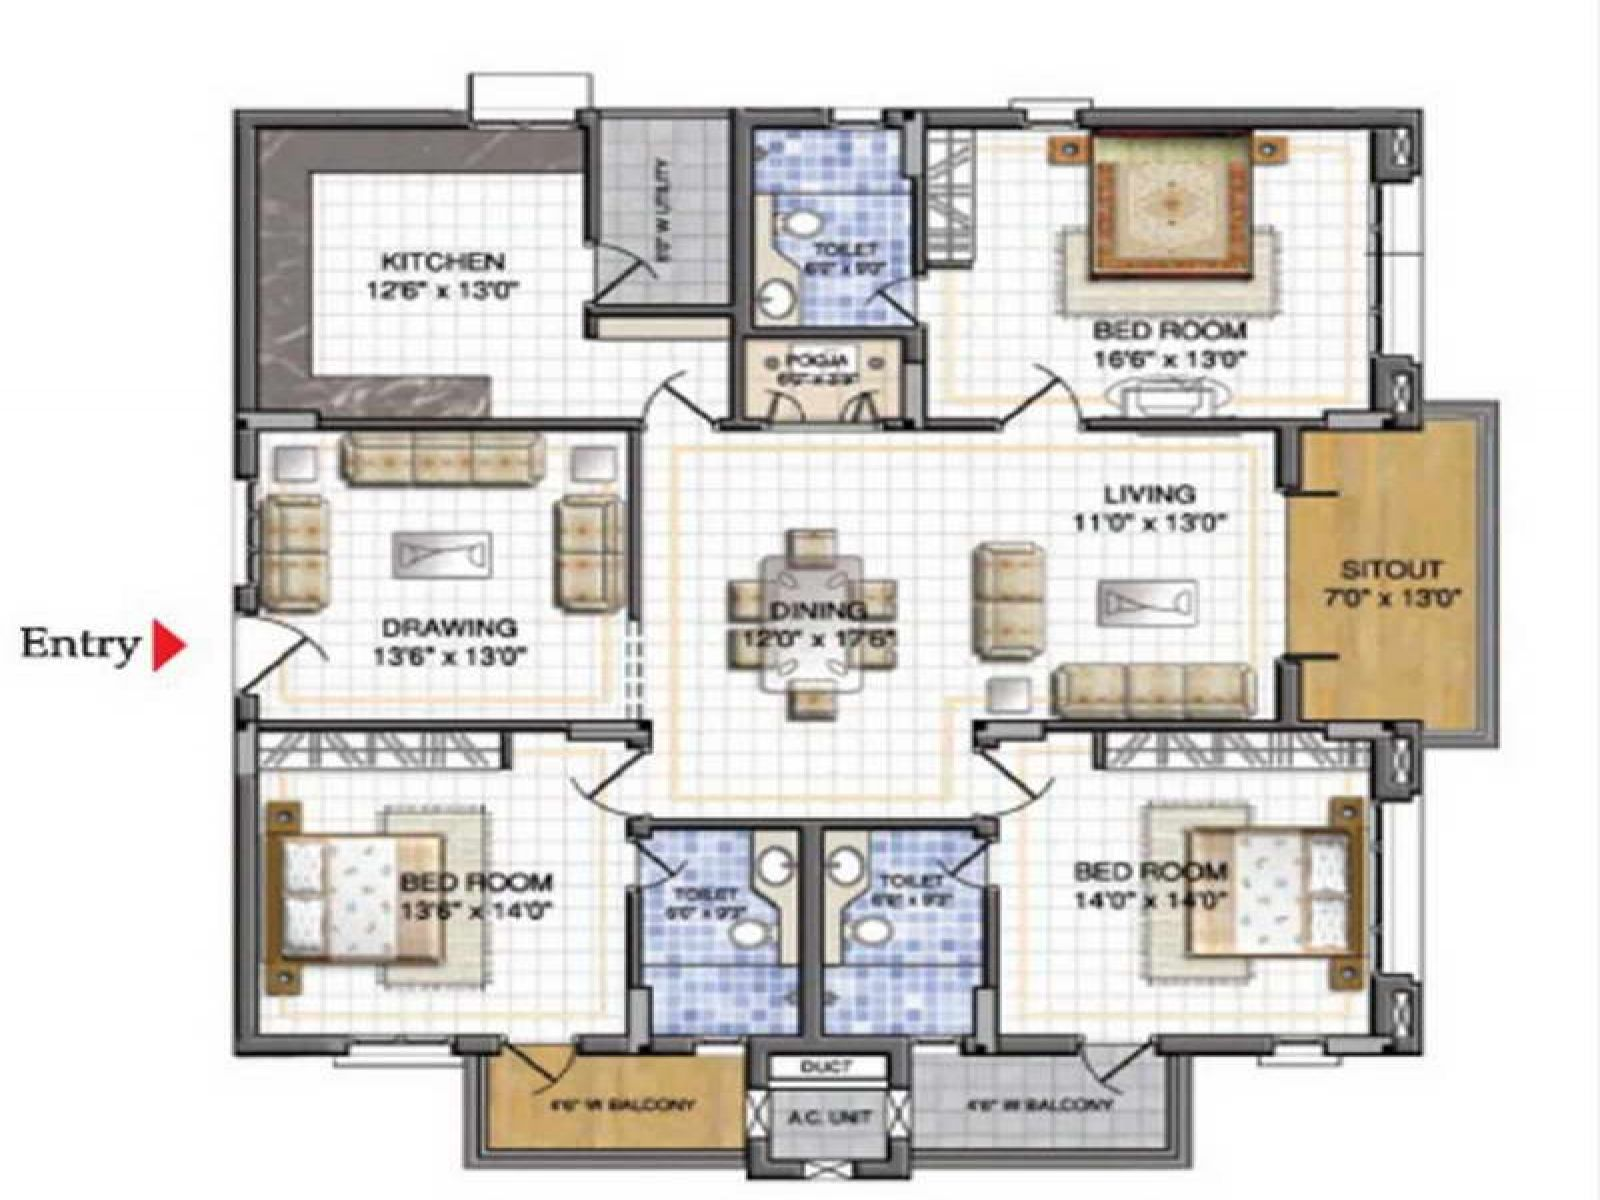 House plans designs online free | House design ideas | Pinterest ...